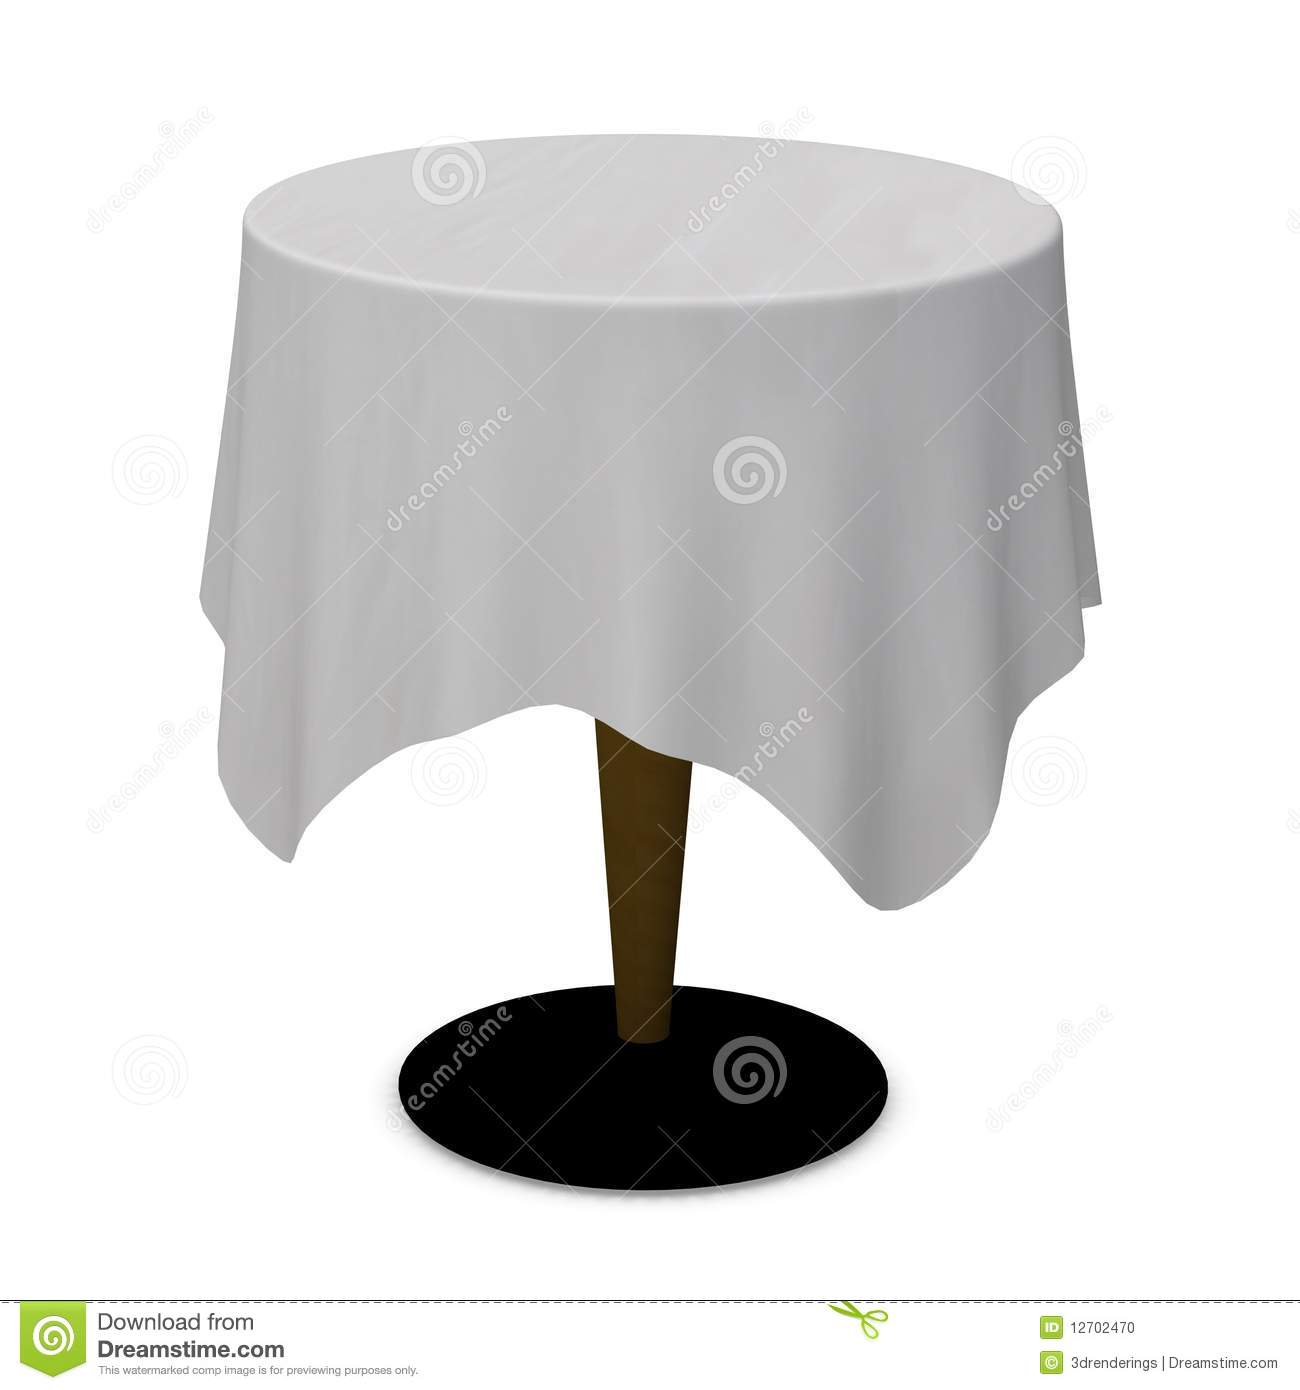 Tablecloth Stock Photo.